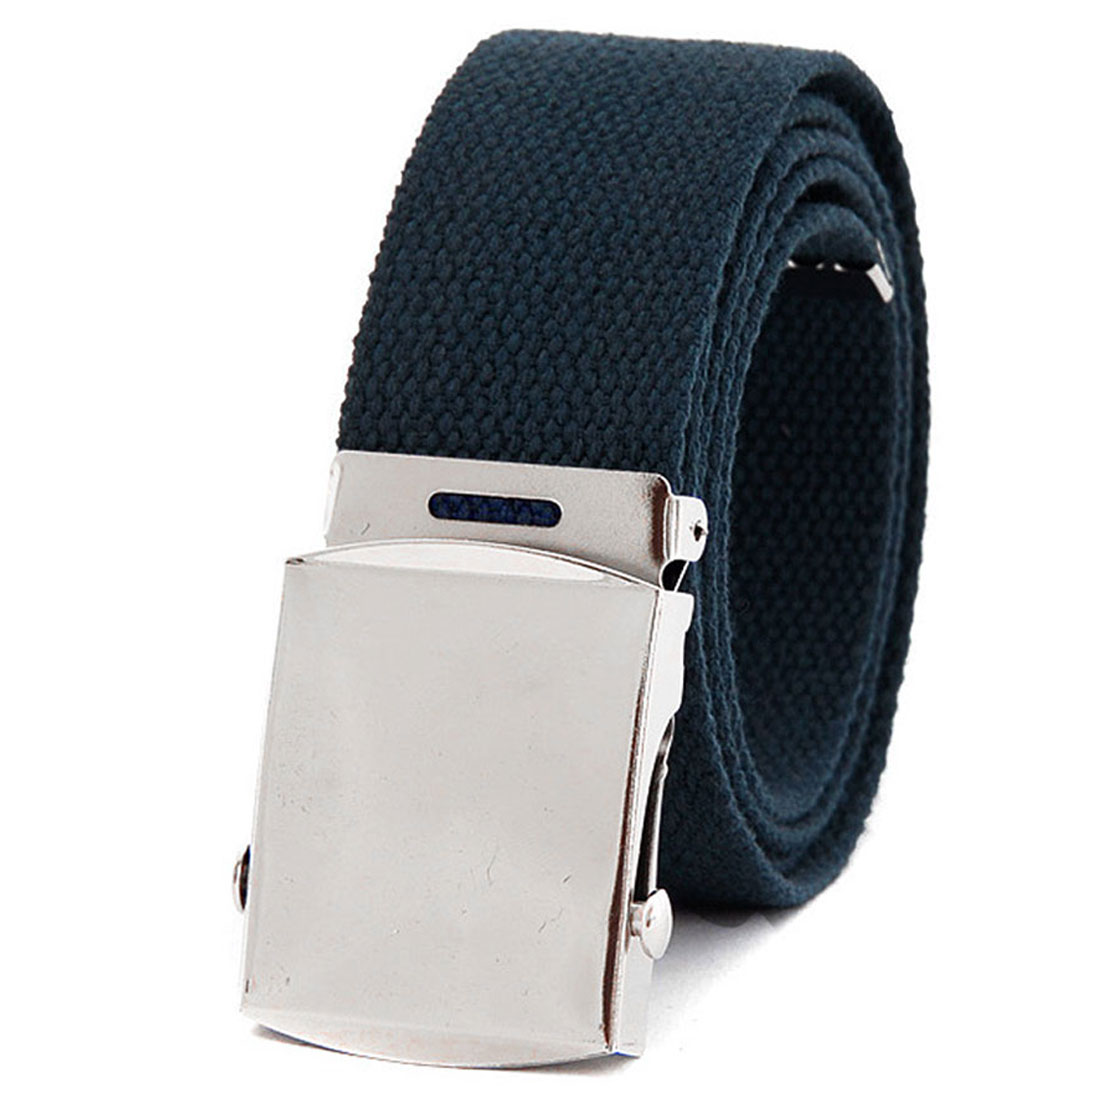 "Unisex Dark Gray Woven 1 3/8"" Width Metal Buckle Cavas Simple Waist Belt"